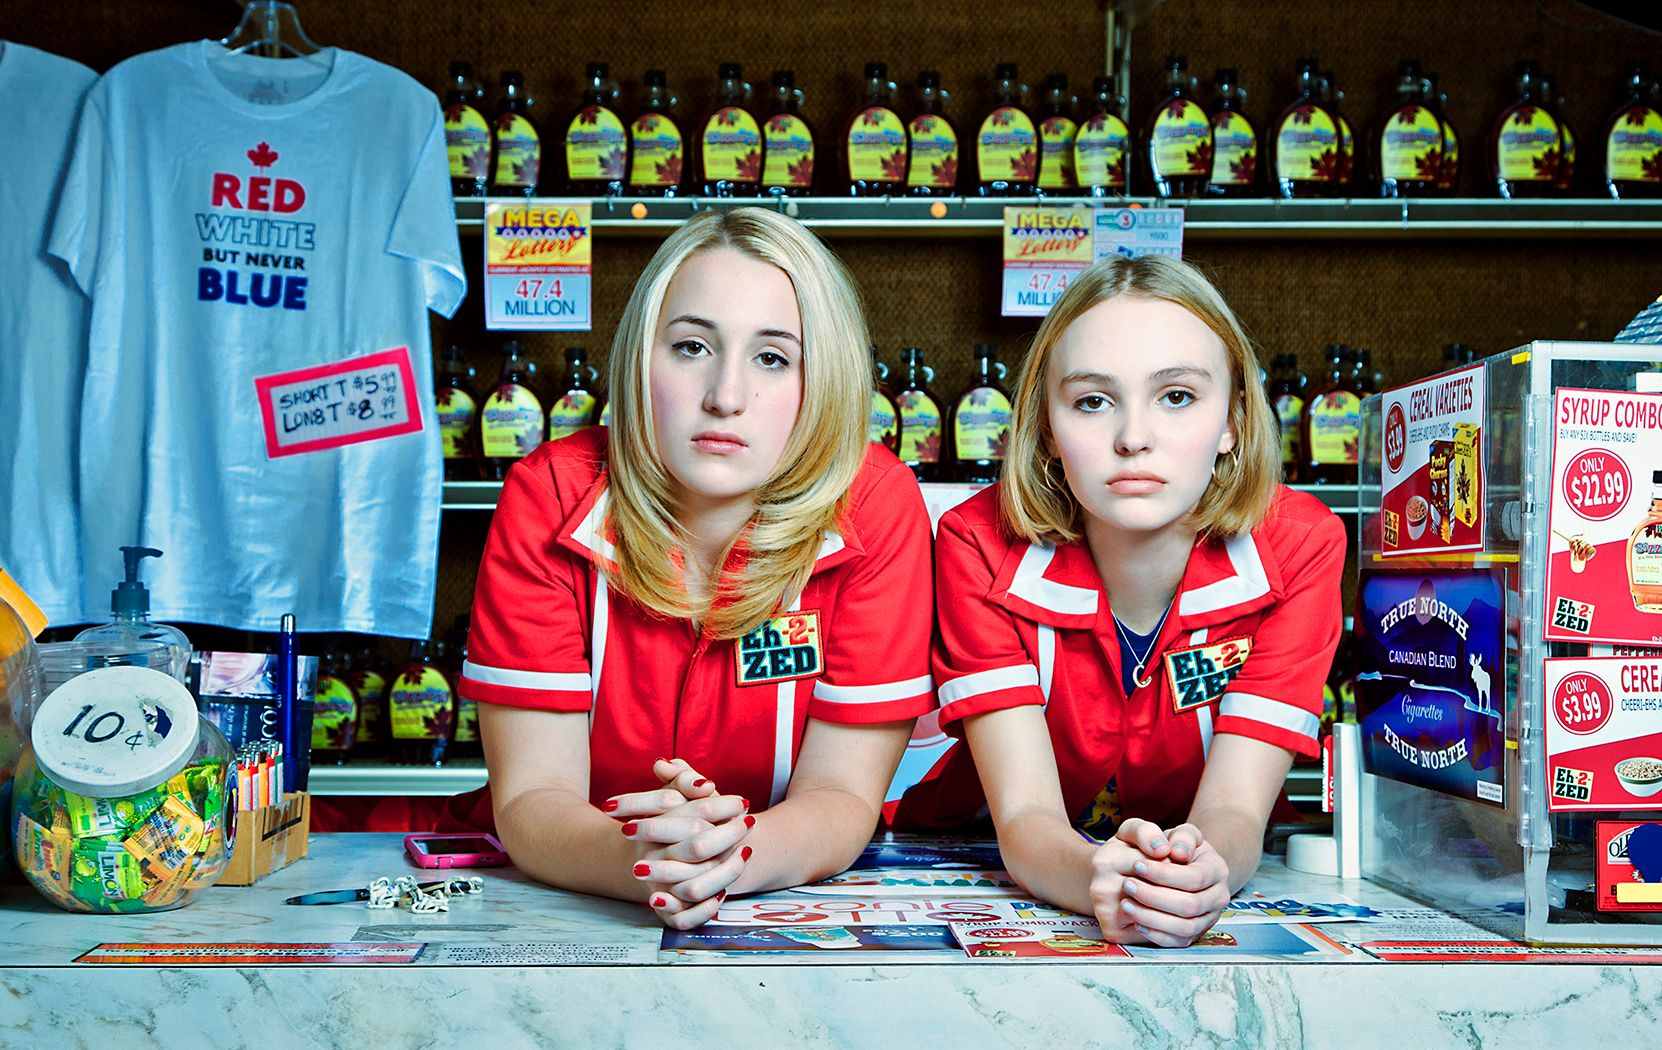 Kevin Smith Talks Yoga Hosers and Casting His Daughter   Collider